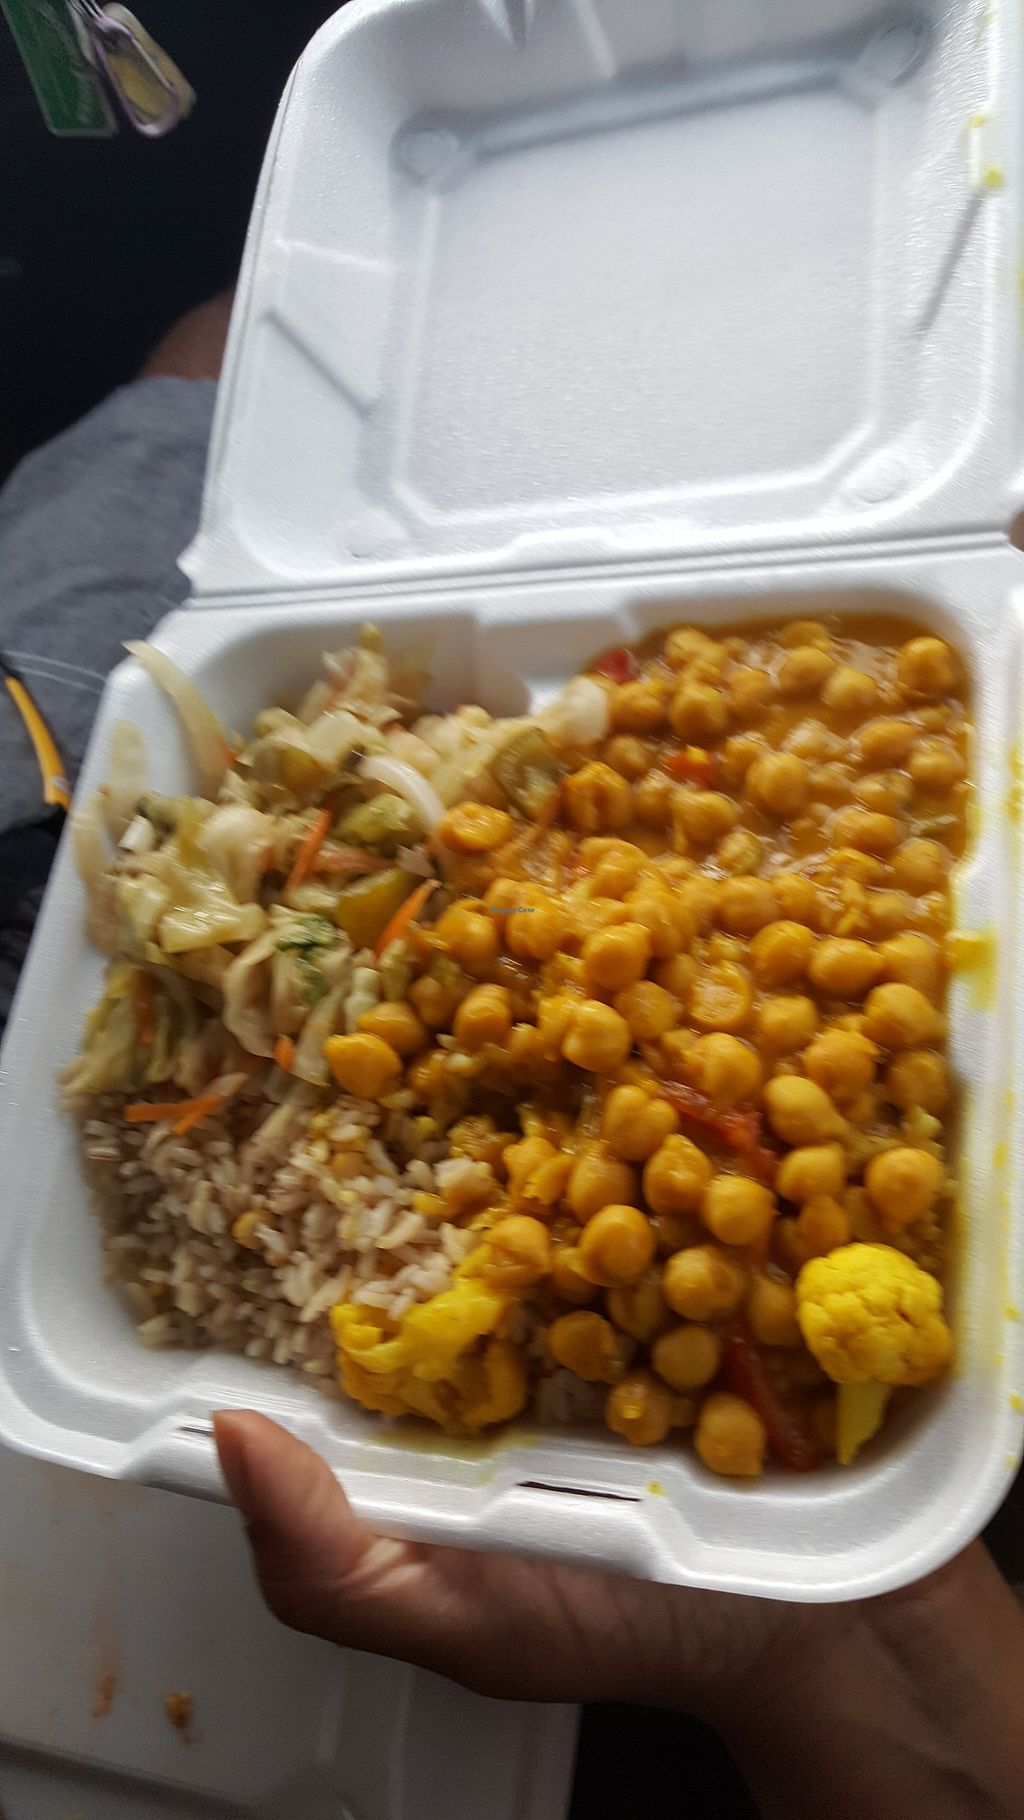 """Photo of Vegetarian Delight  by <a href=""""/members/profile/Tnj0507"""">Tnj0507</a> <br/>Curry chick peas <br/> July 29, 2017  - <a href='/contact/abuse/image/23966/286416'>Report</a>"""